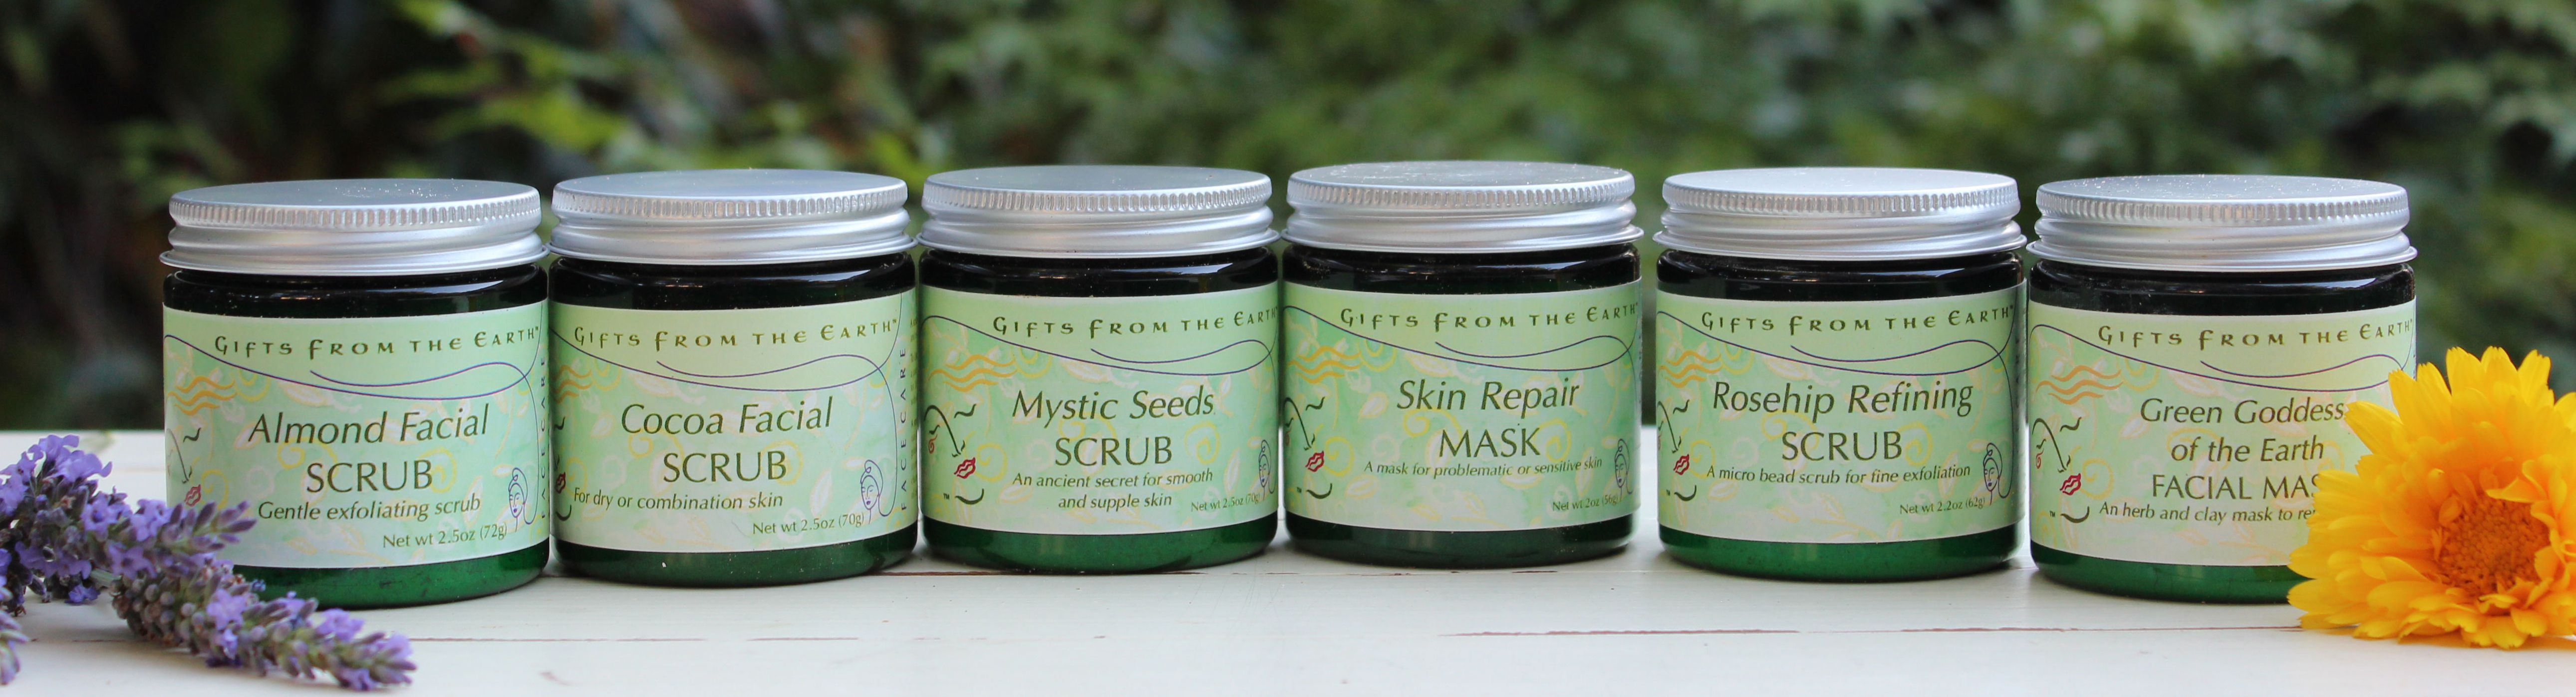 facial-scrub-collection-web1397.jpg